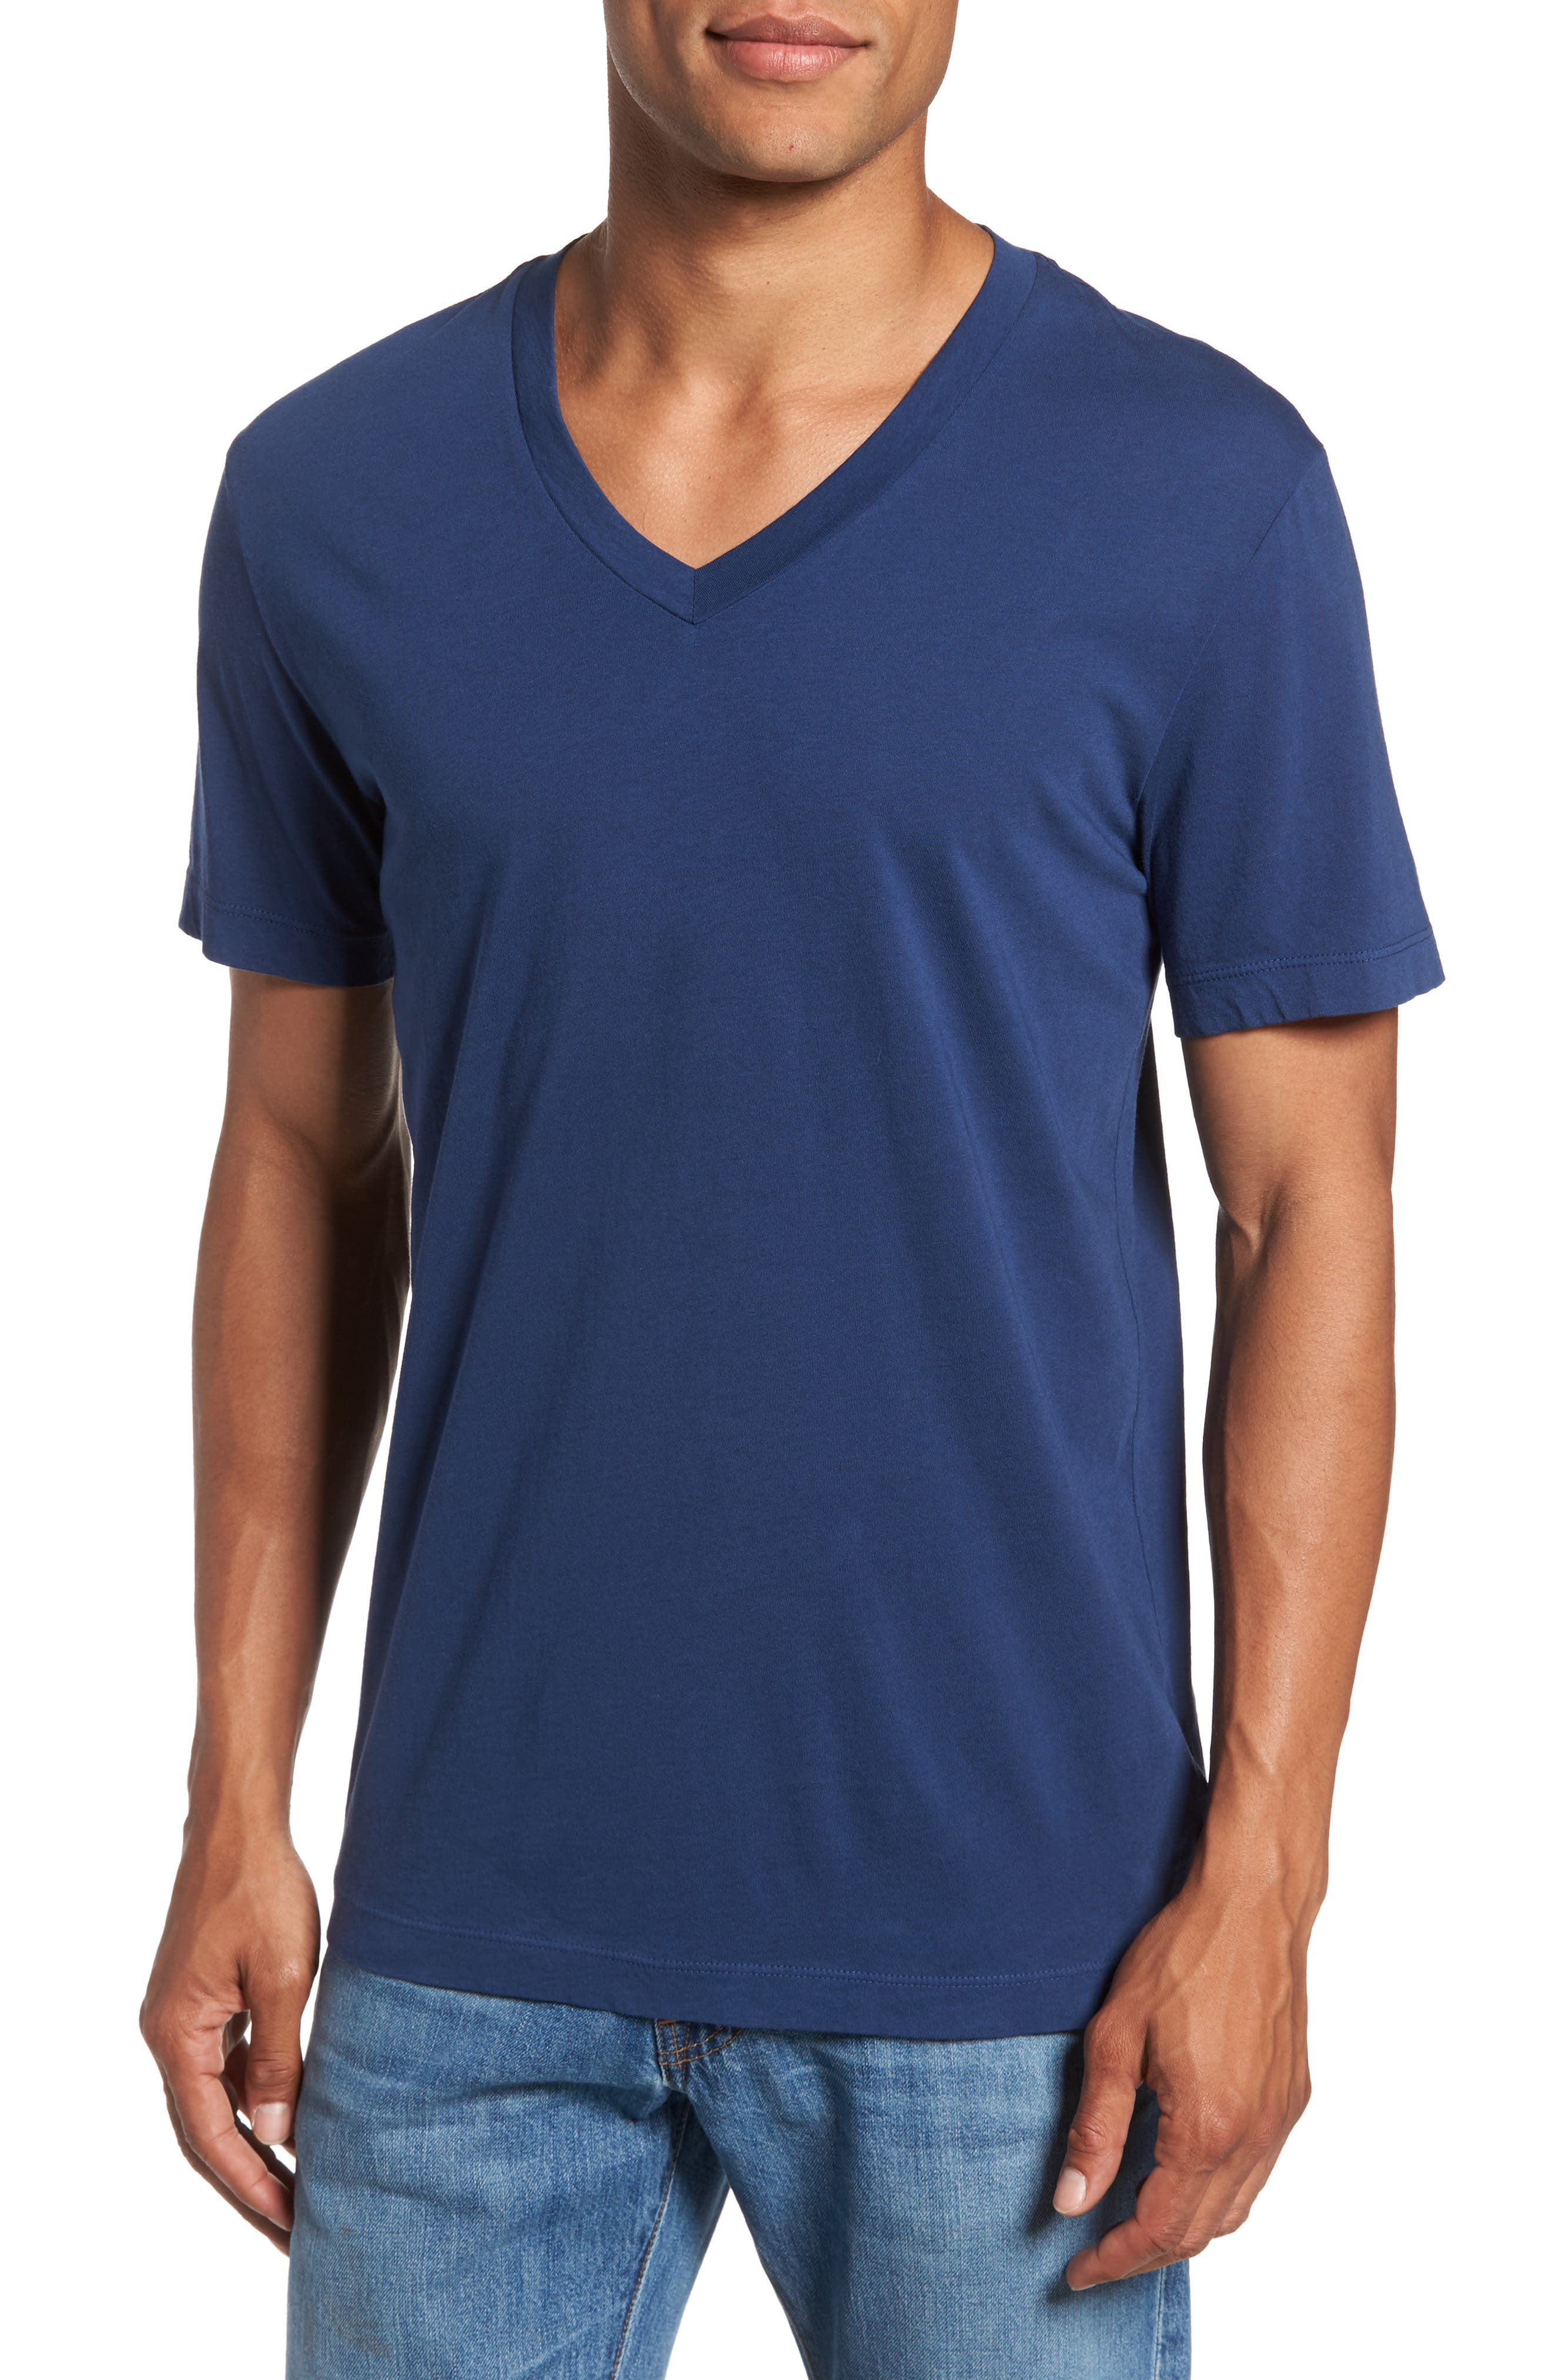 Main Image - James Perse Short Sleeve V-Neck T-Shirt